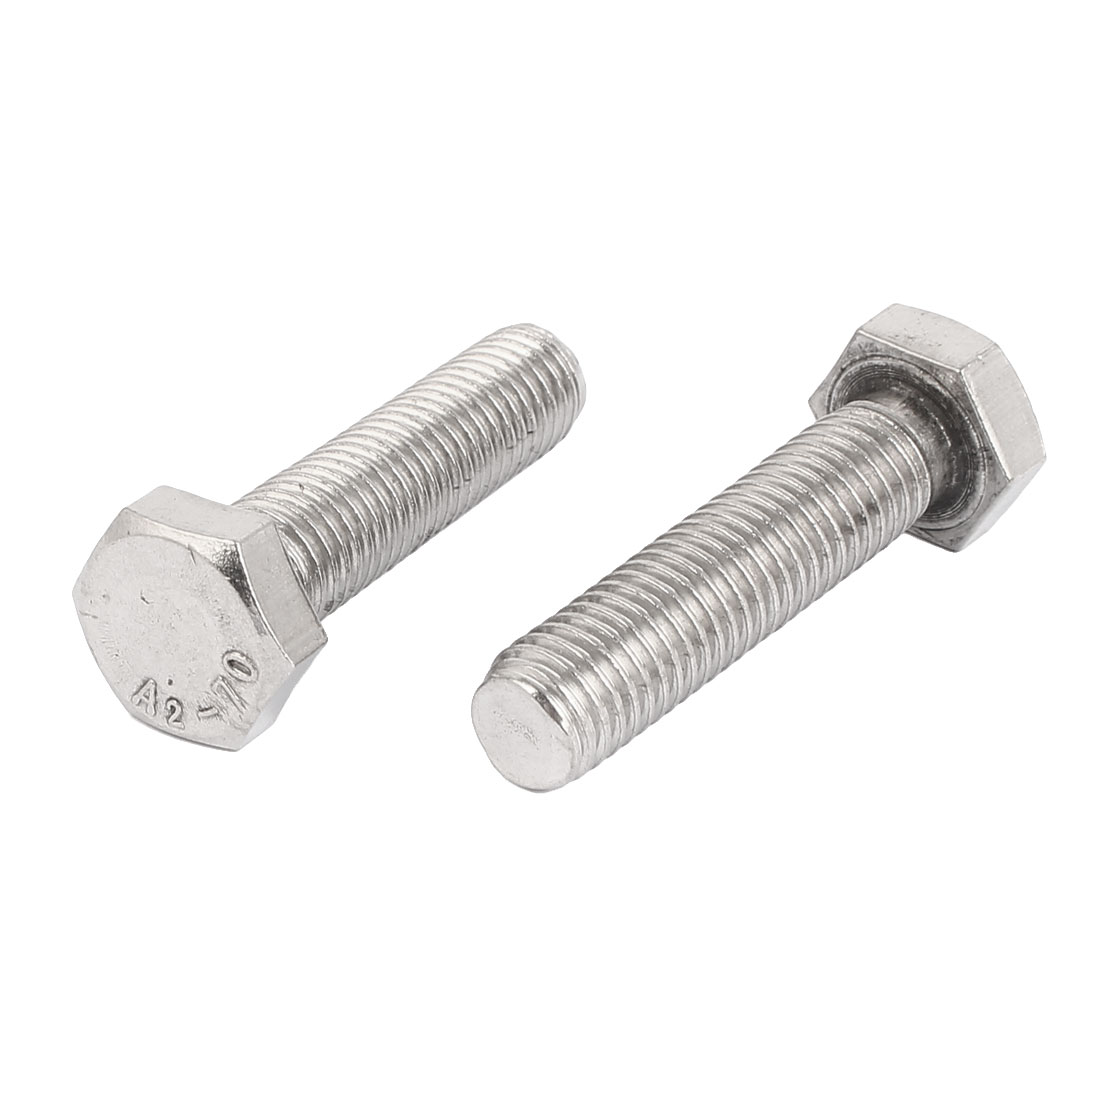 M14 x 57mm External Hex Drive Fully Thread Fixing Hexagon Screws Bolts 2PCS